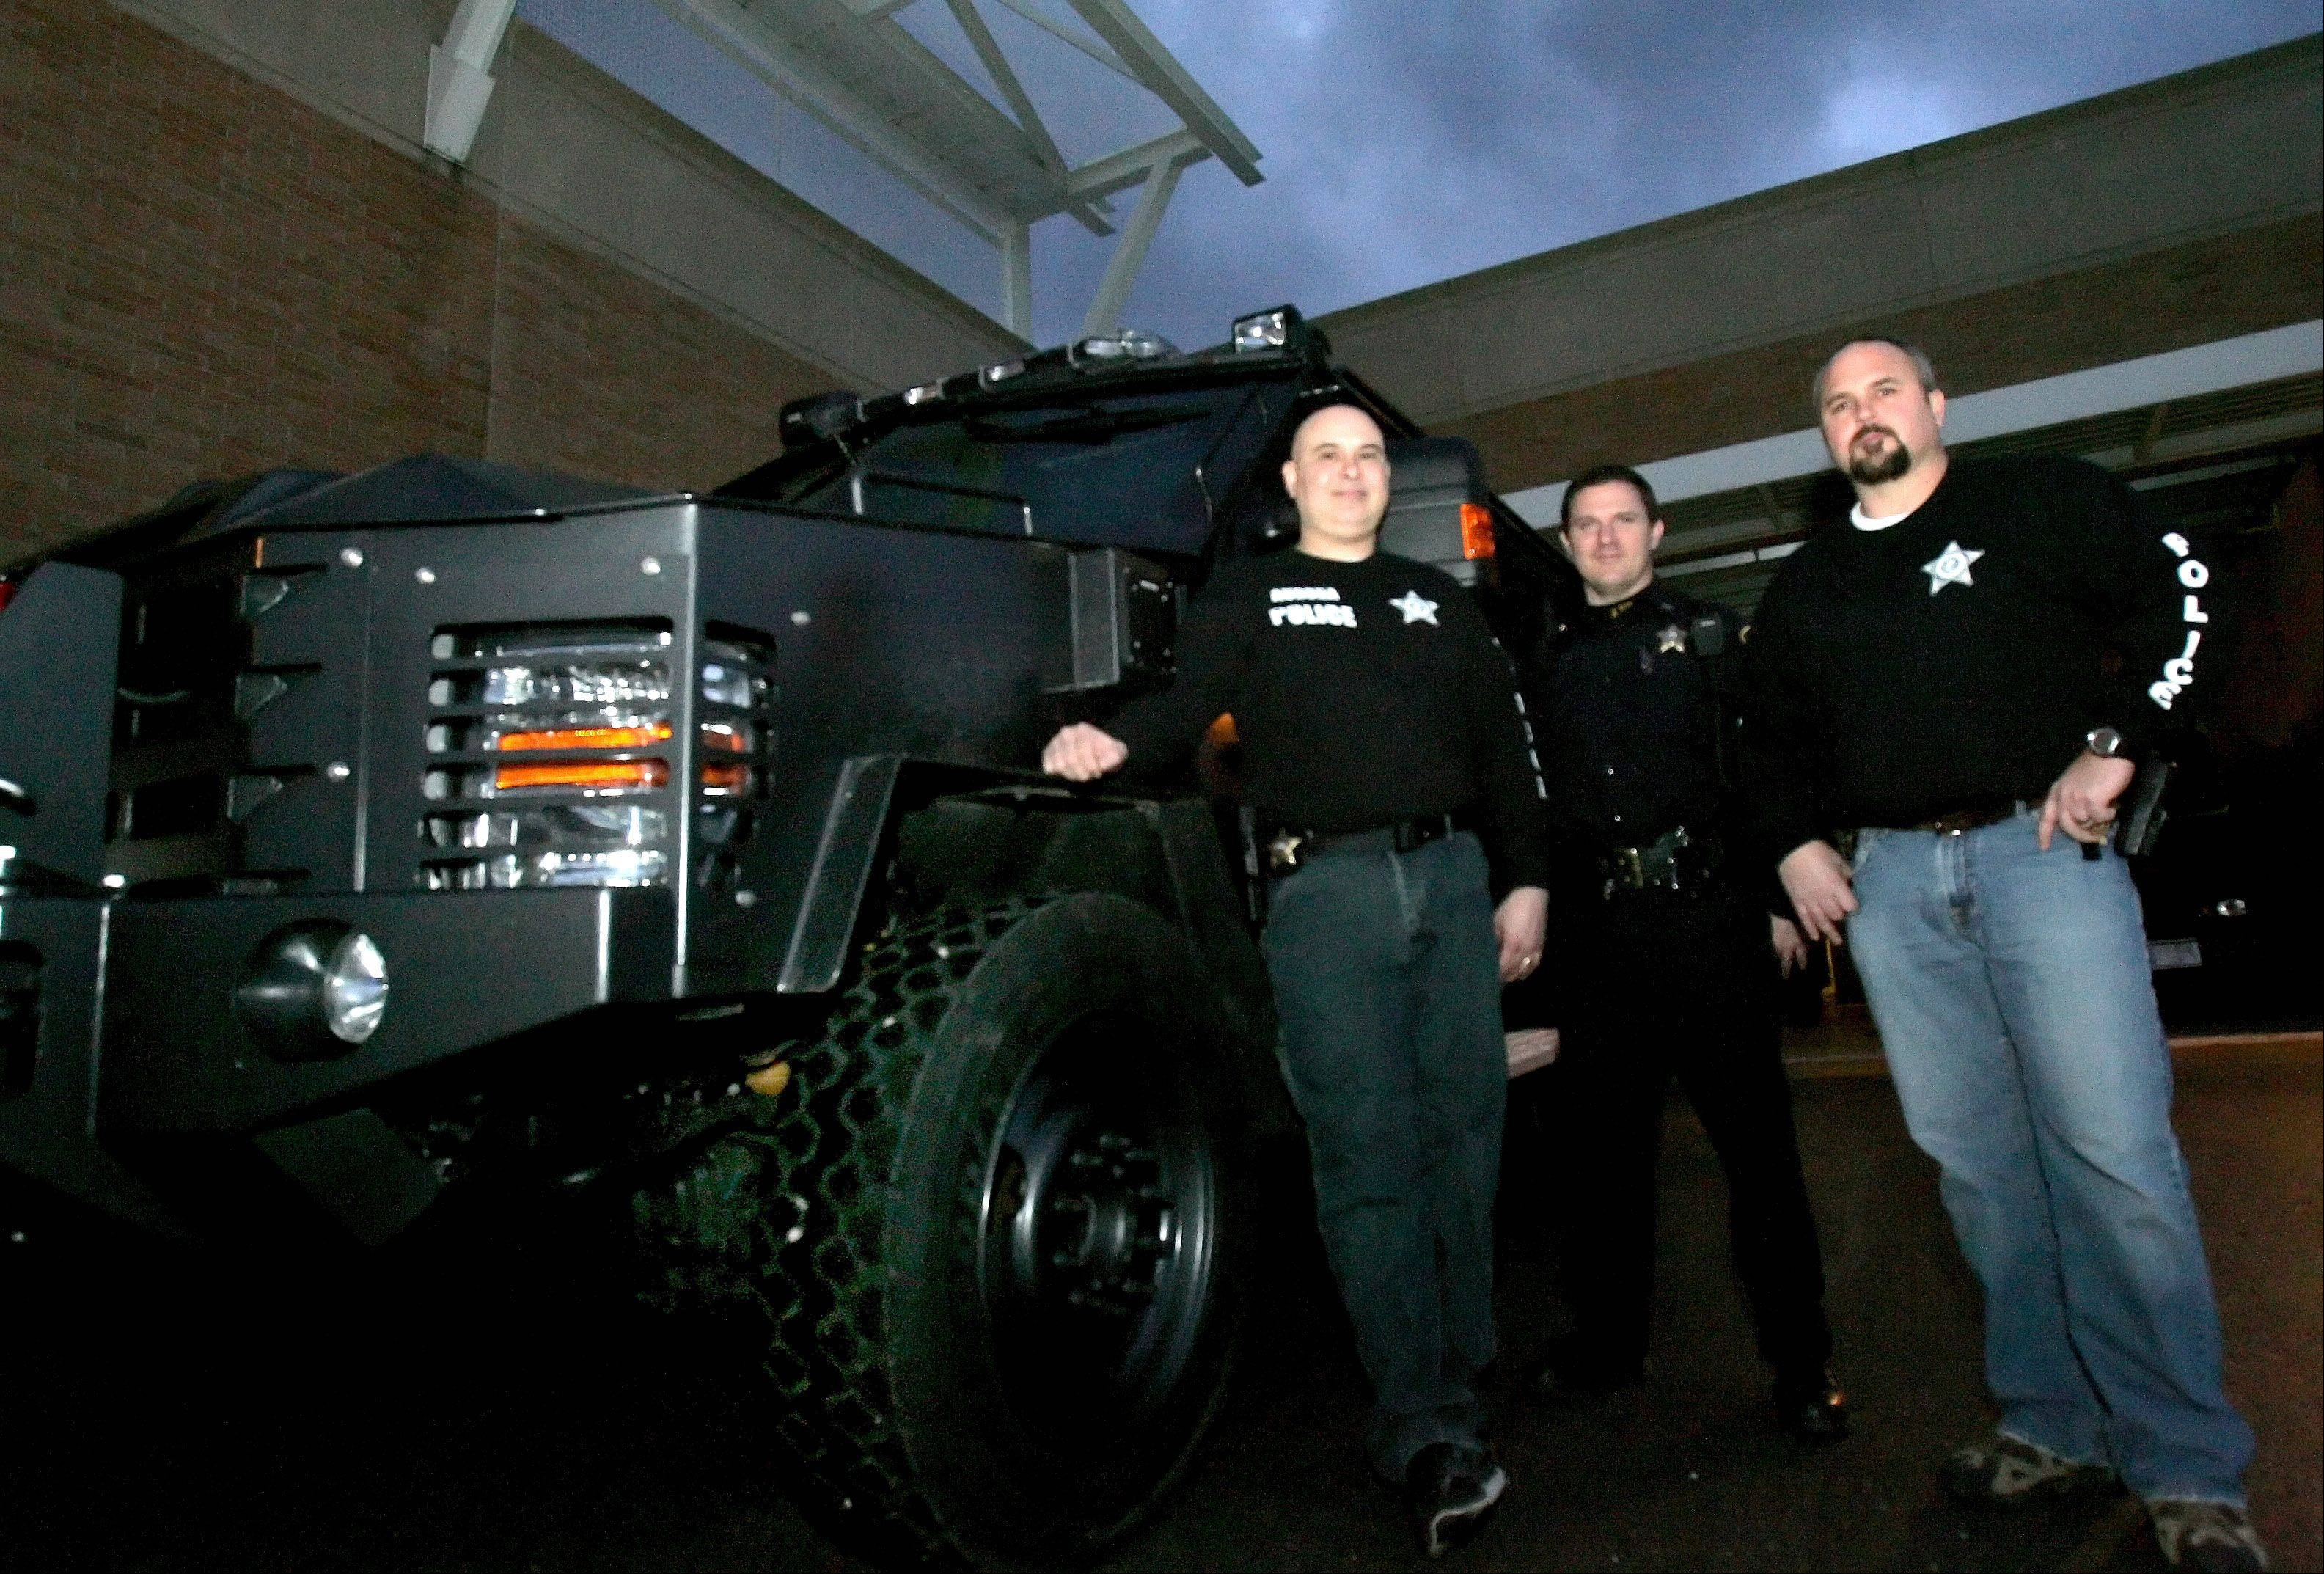 Aurora police sergeants Alfredo Dean, Joe Weber and Ricky Ahlgren used the massive Special Response Team armored vehicle sometimes called 'the tank' to help motorists stranded during the Blizzard of 2011.